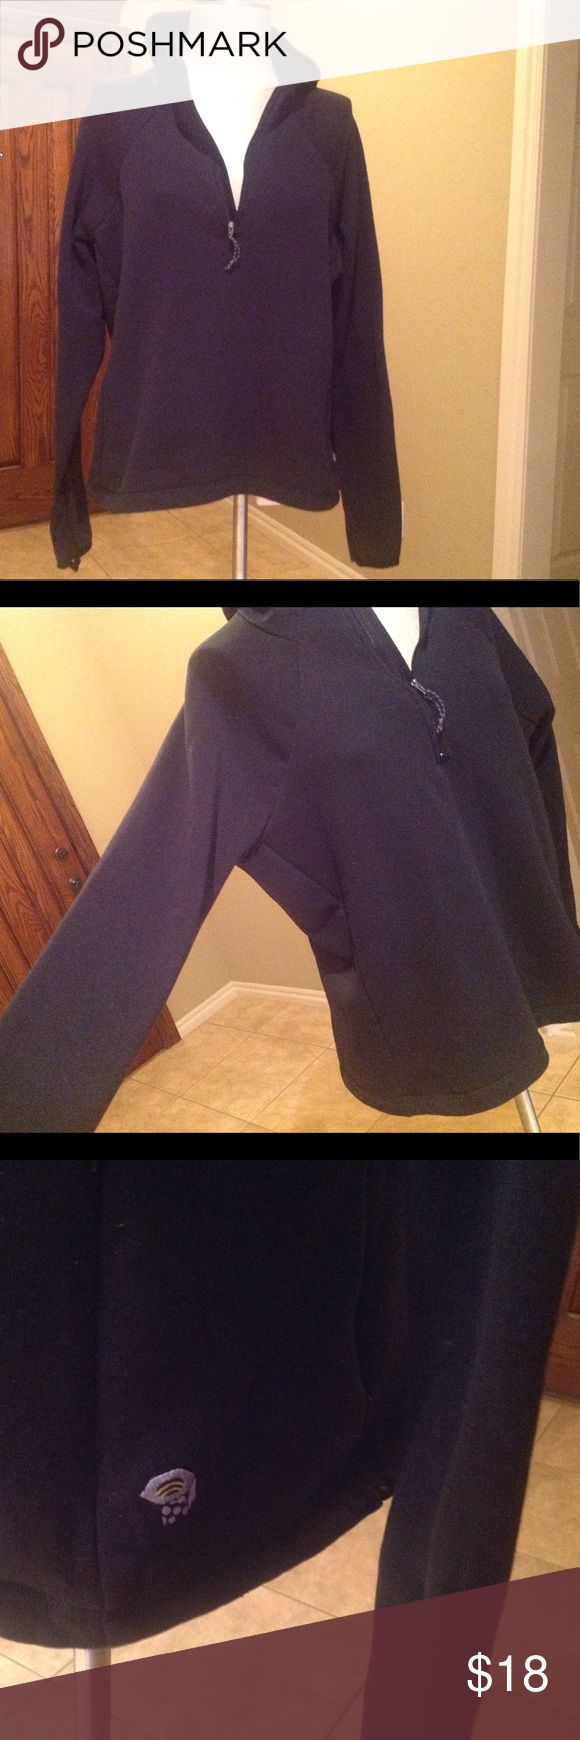 Mountain HardWear jacket Perfect condition! The only flaws are just the  loose thread on both sleeves that needs to be sewn back. Price reflect no return please. Mountain Hardwear Tops Sweatshirts & Hoodies